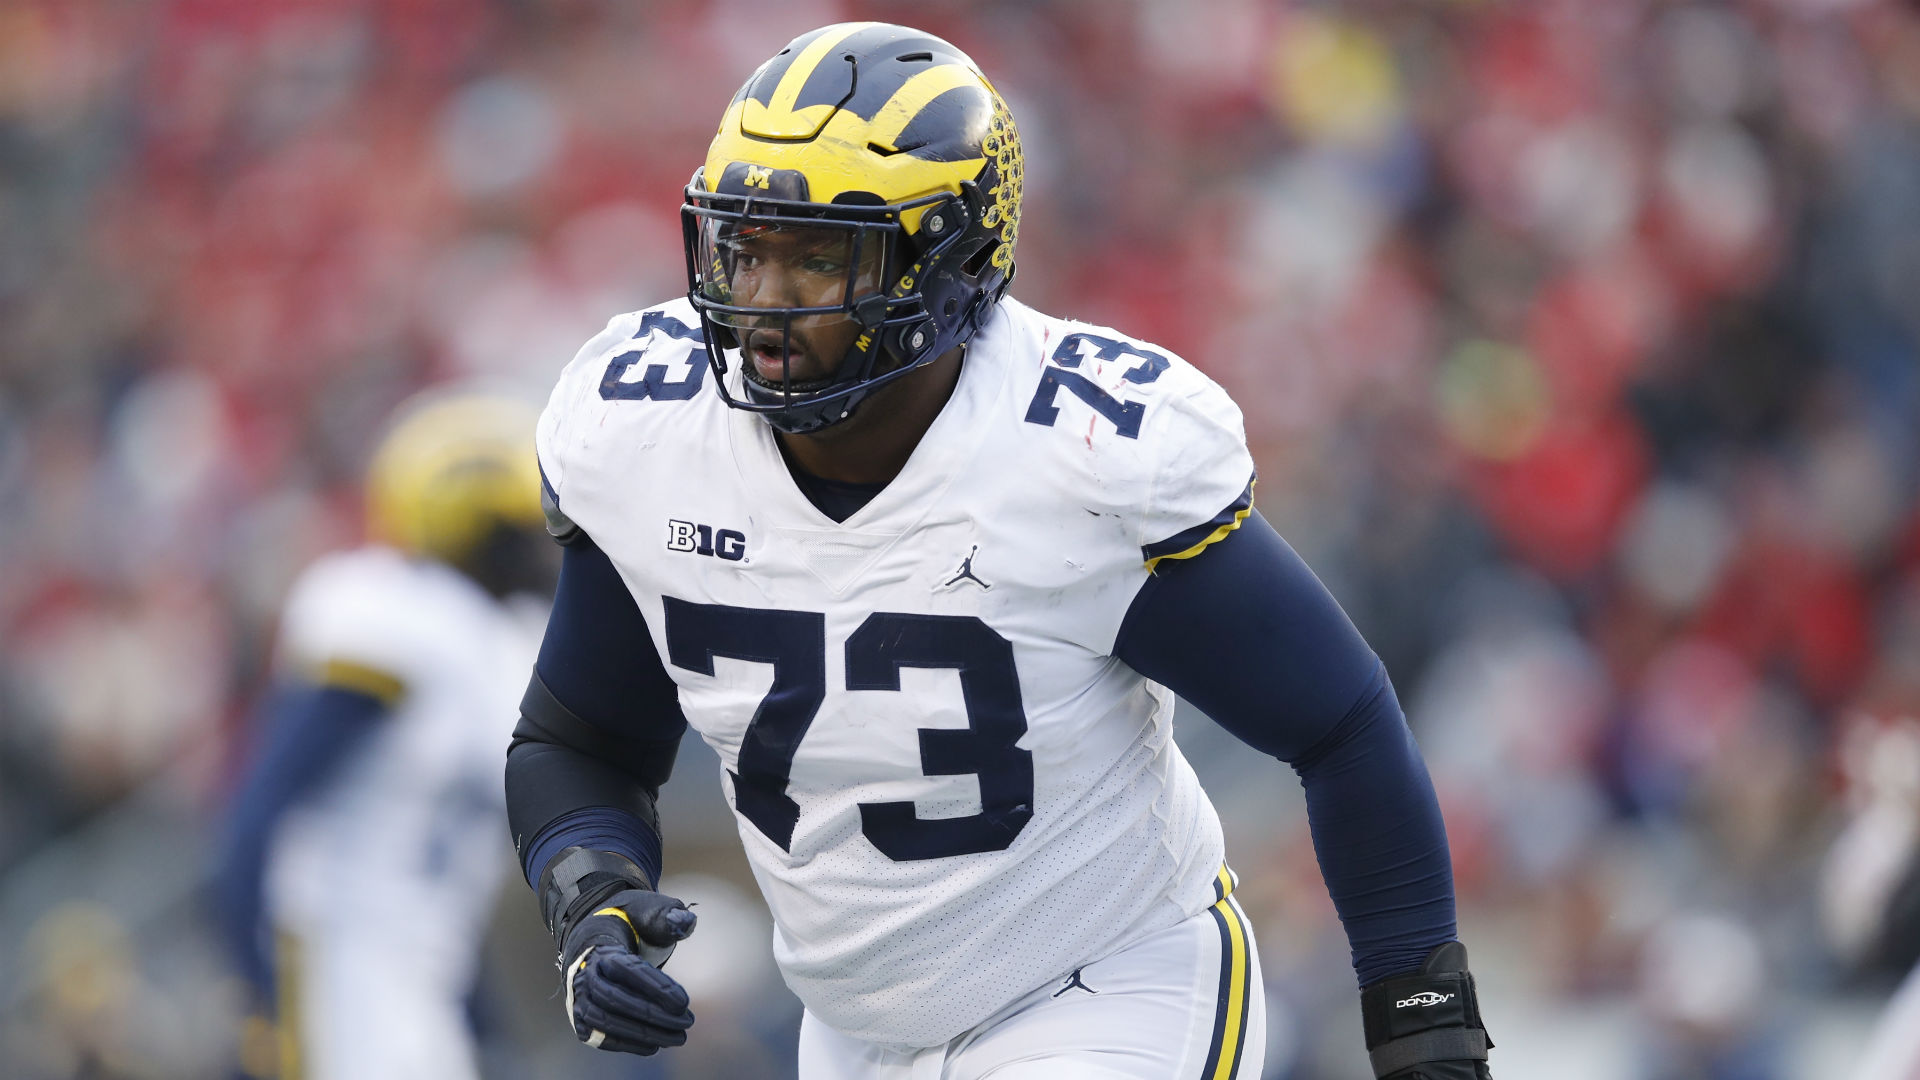 Michigan DT, potential first-round pick Maurice Hurst diagnosed with heart condition